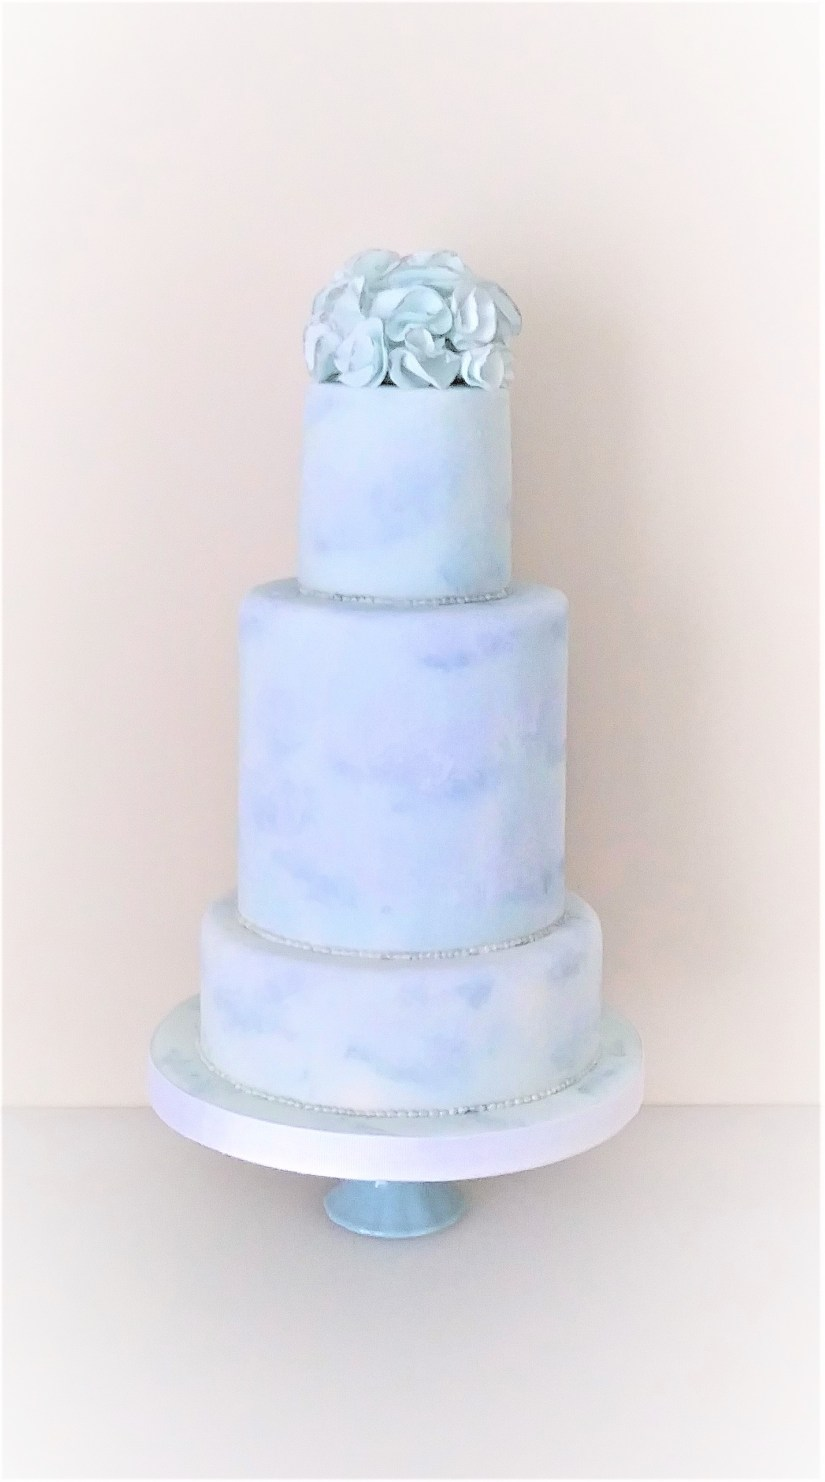 Blue Wedding Cake with Hand Painted Clouds & Sugar Ruffles by Cocoa & Whey Cakes in Winchester, Hampshire